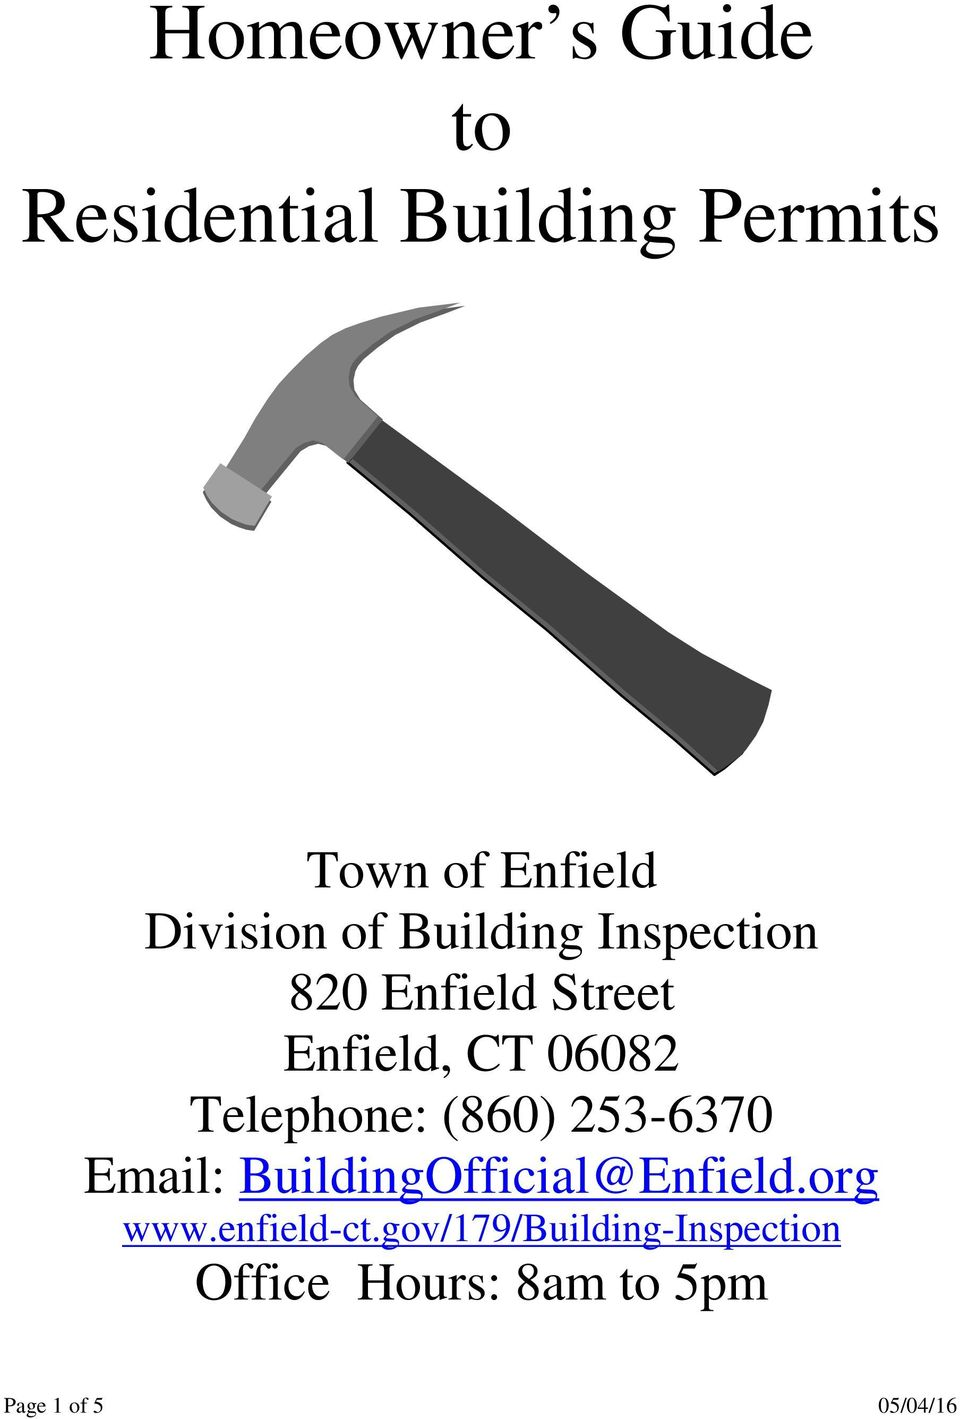 Telephone: (860) 253-6370 Email: BuildingOfficial@Enfield.org www.